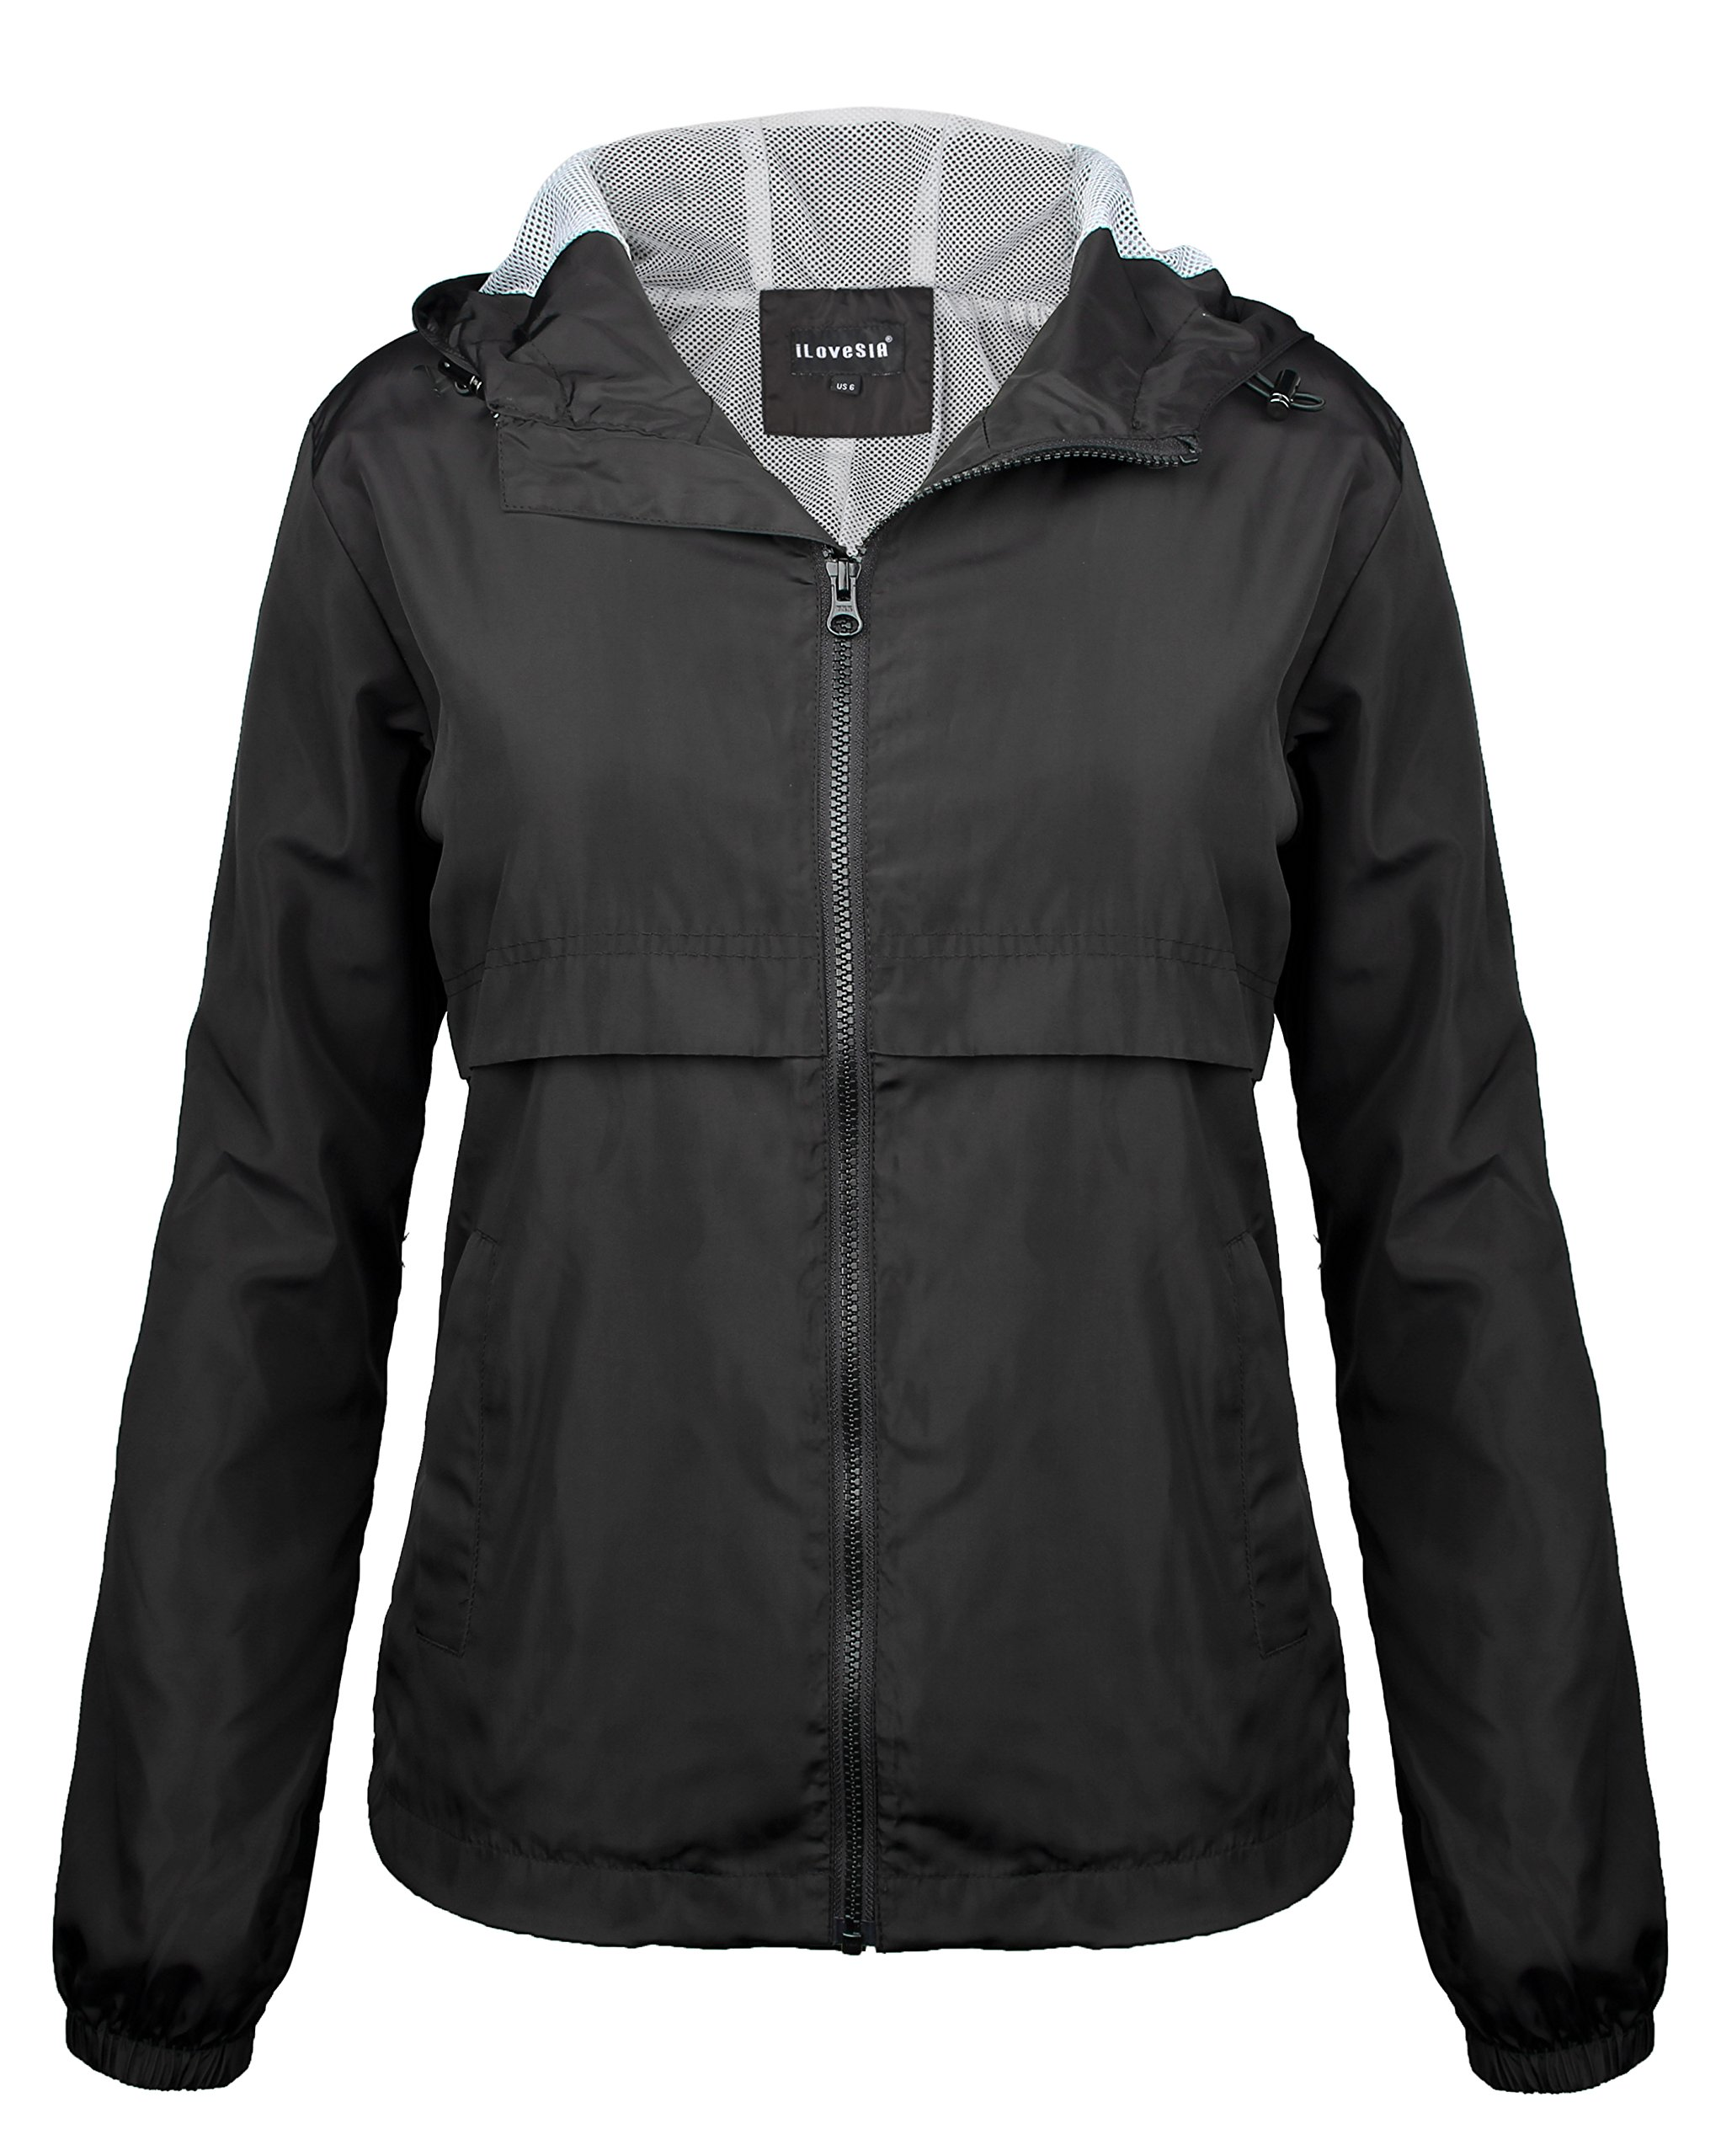 iLoveSIA Women's Outdoor Rain Jacket with Hood Black Size 12